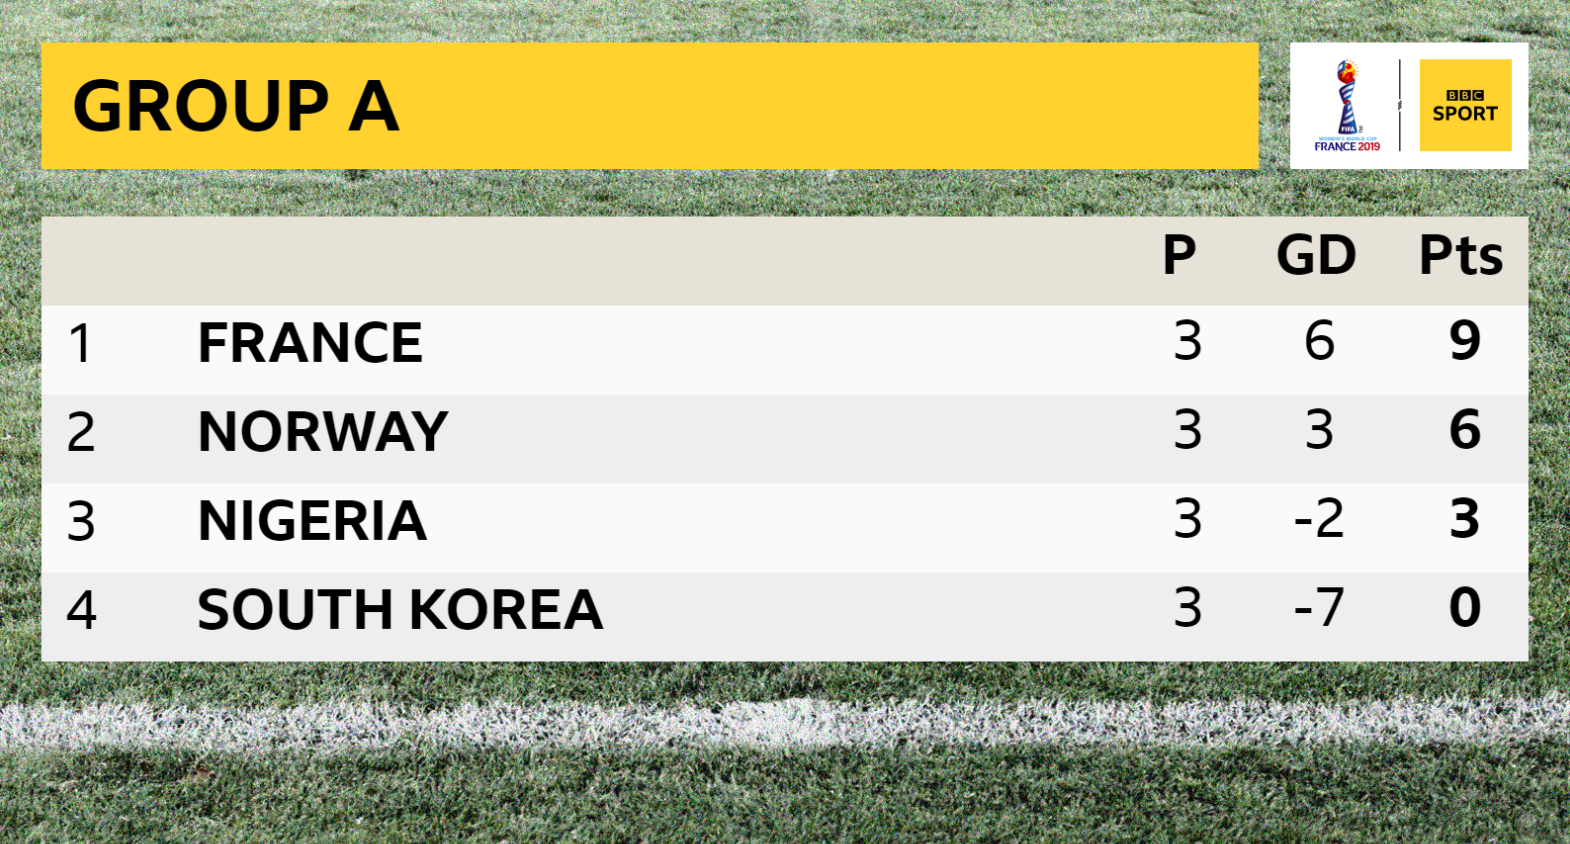 Watch South Korea v Norway live in the Fifa Women's World